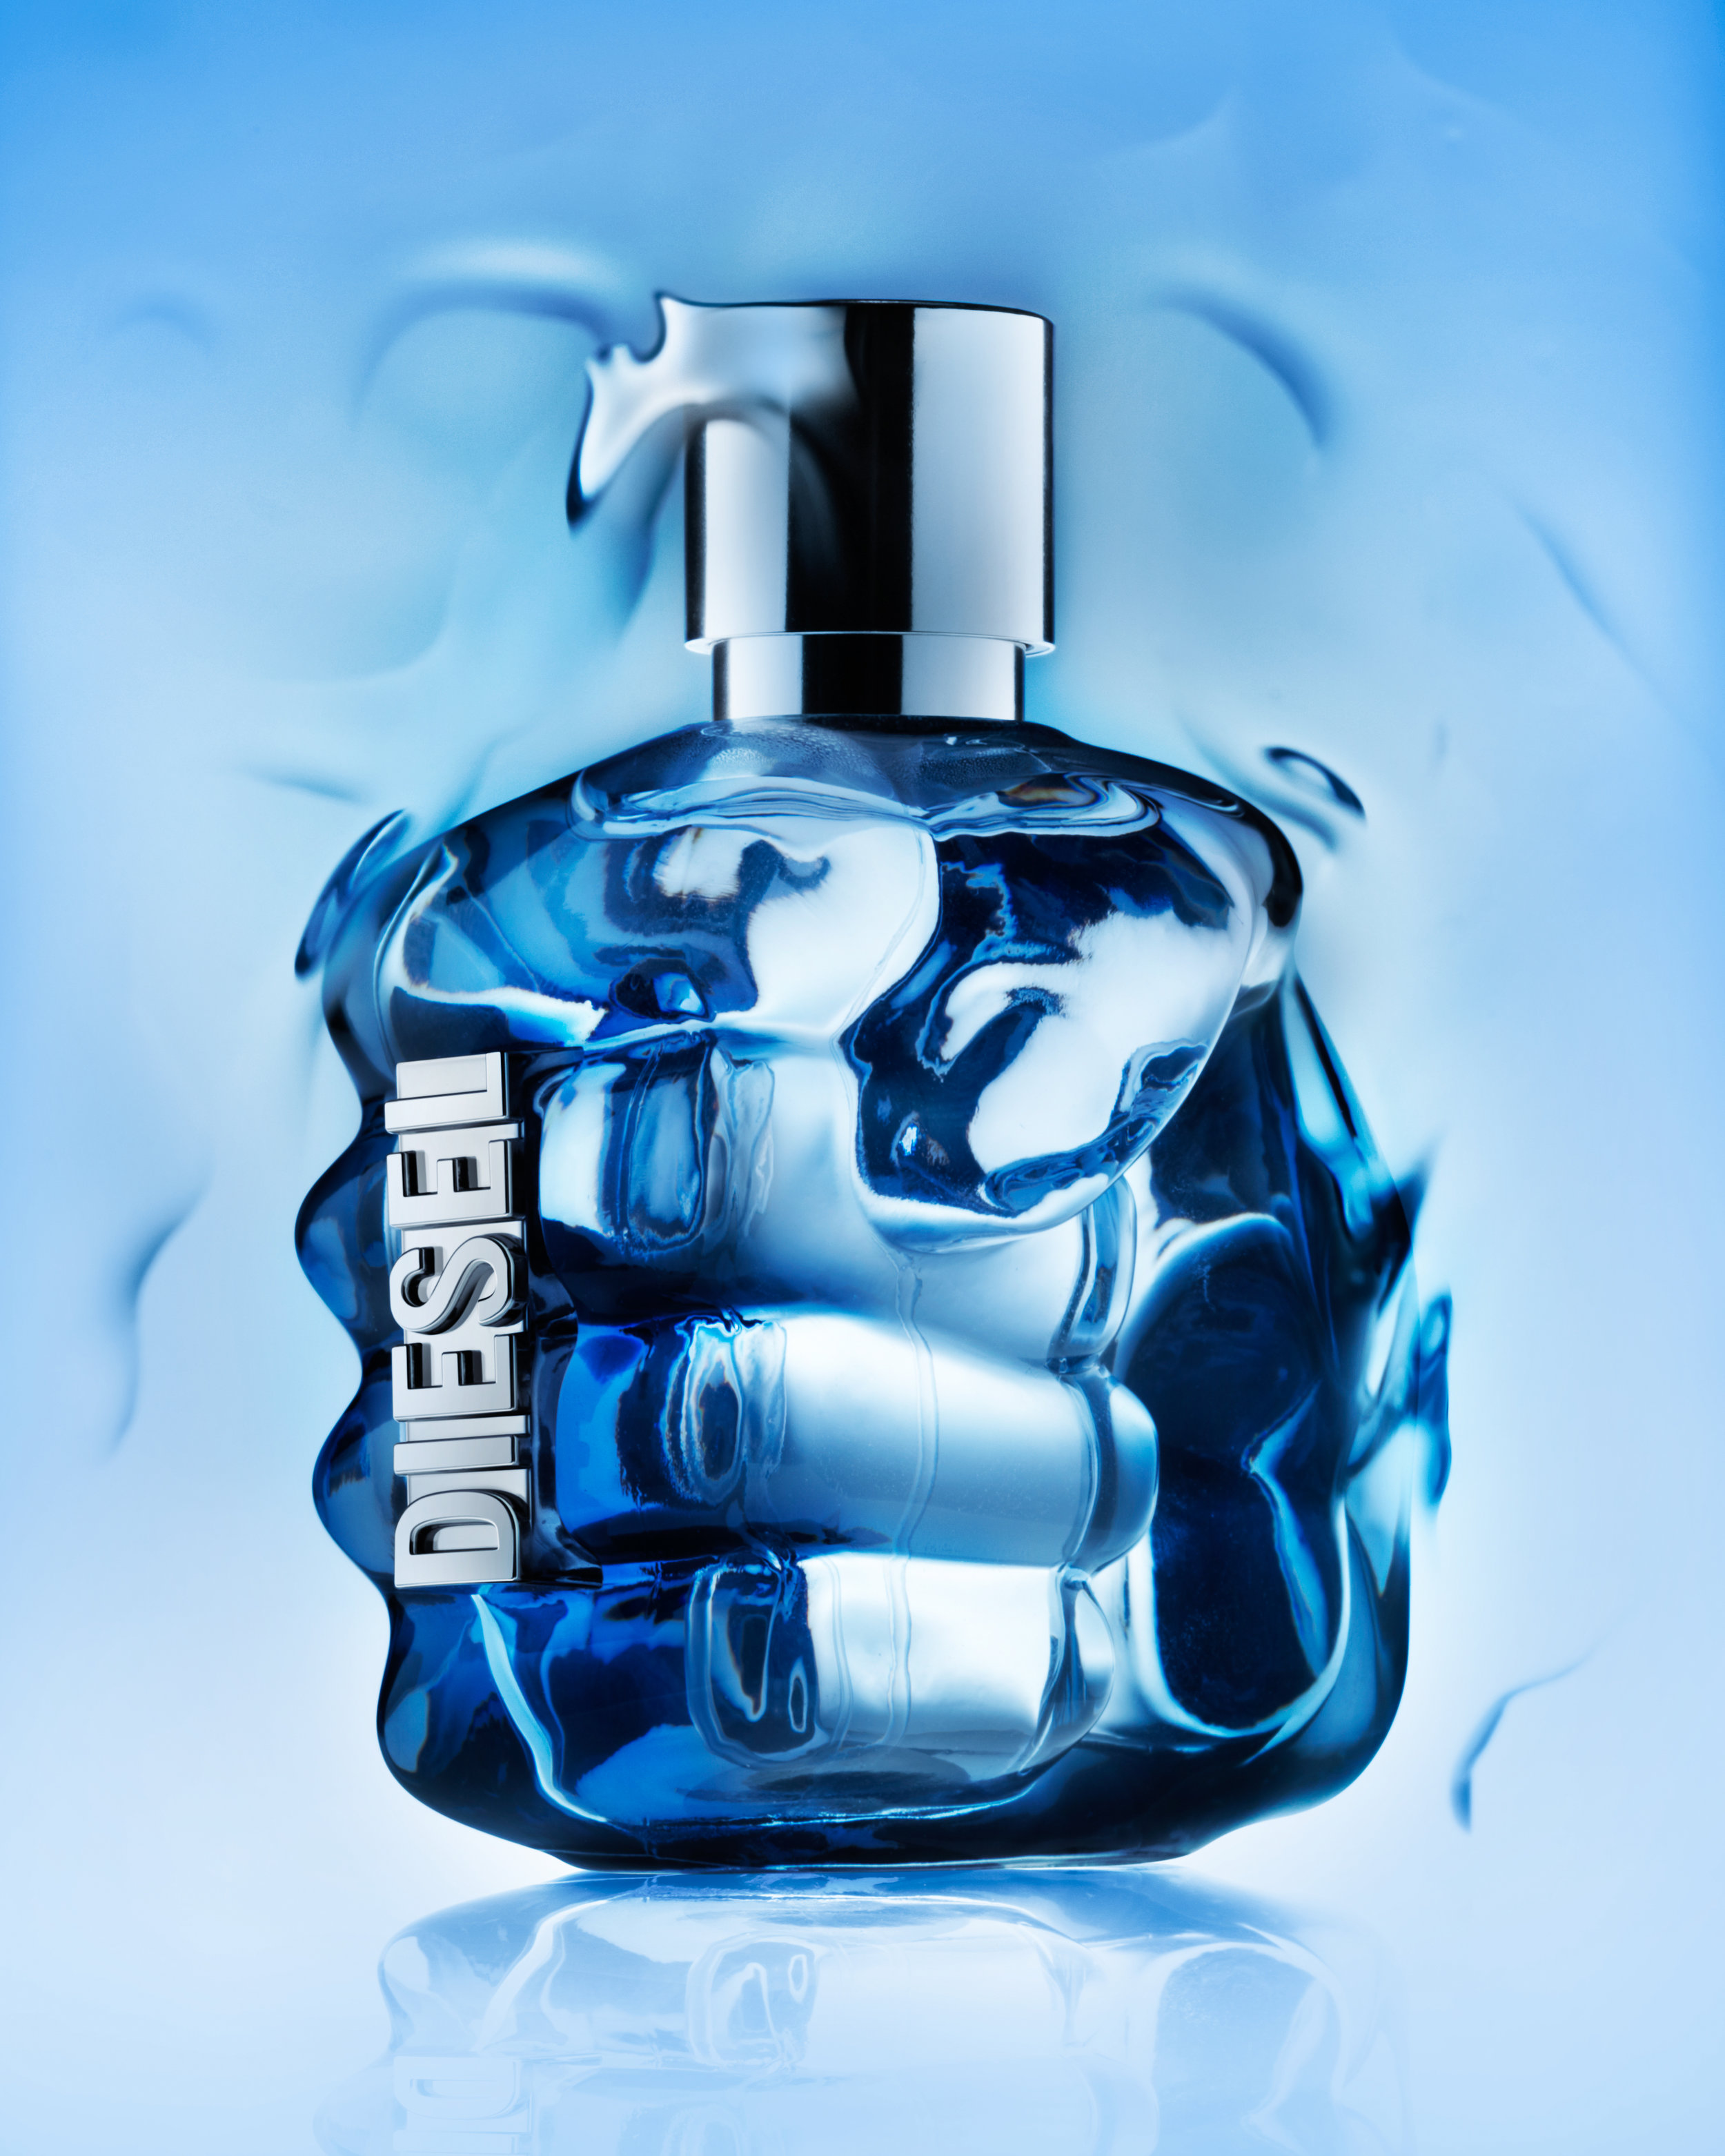 diesel-cosmetics-mens-perfume-cologne-still-life-photographer-advertising-photography-stan-musilek